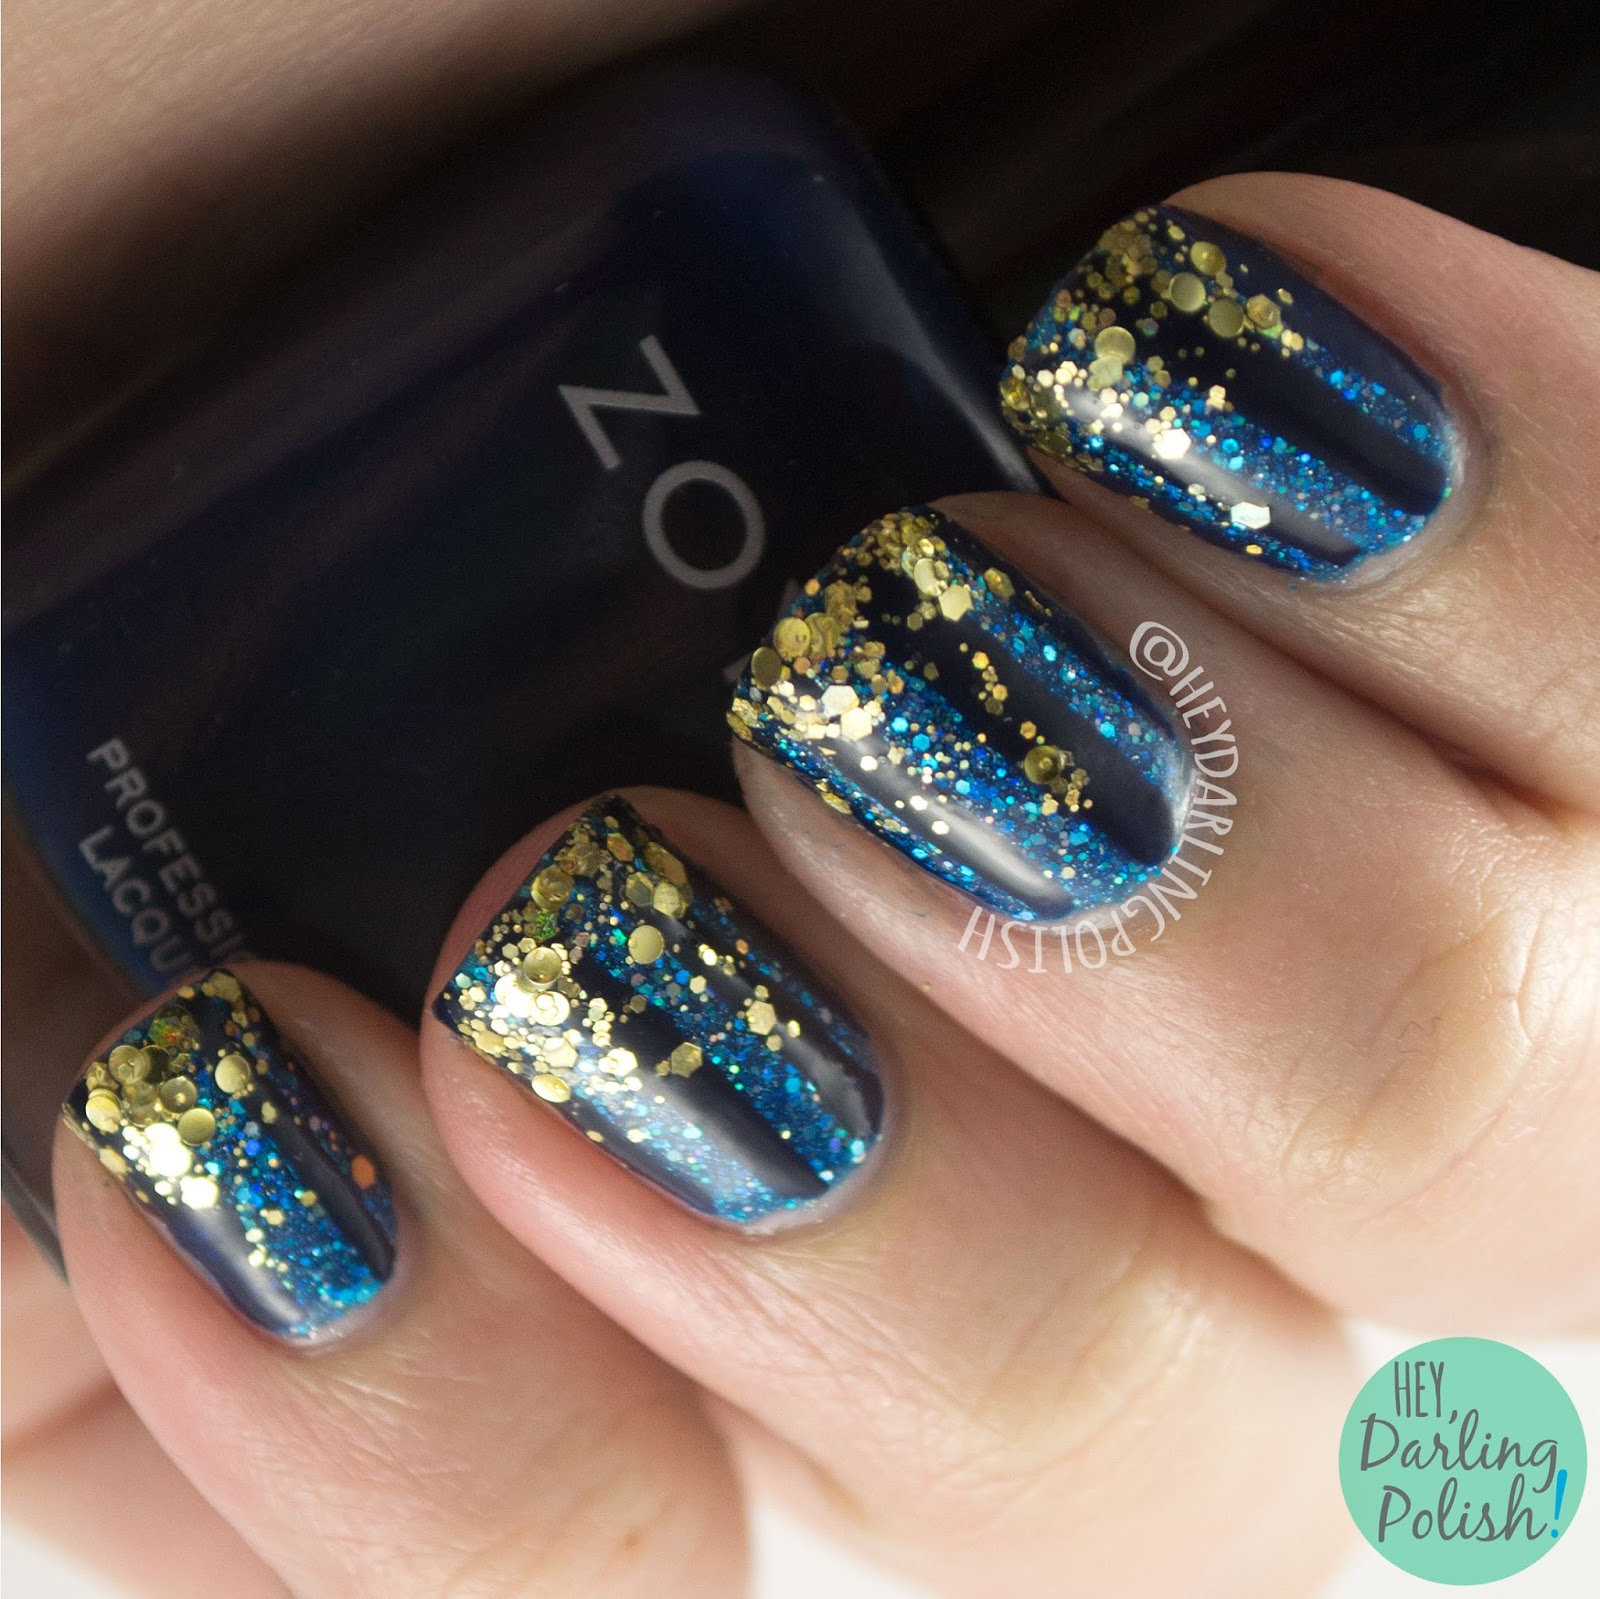 Hey, Darling Polish!: 31 Day Challenge 2015: Tape Manicure